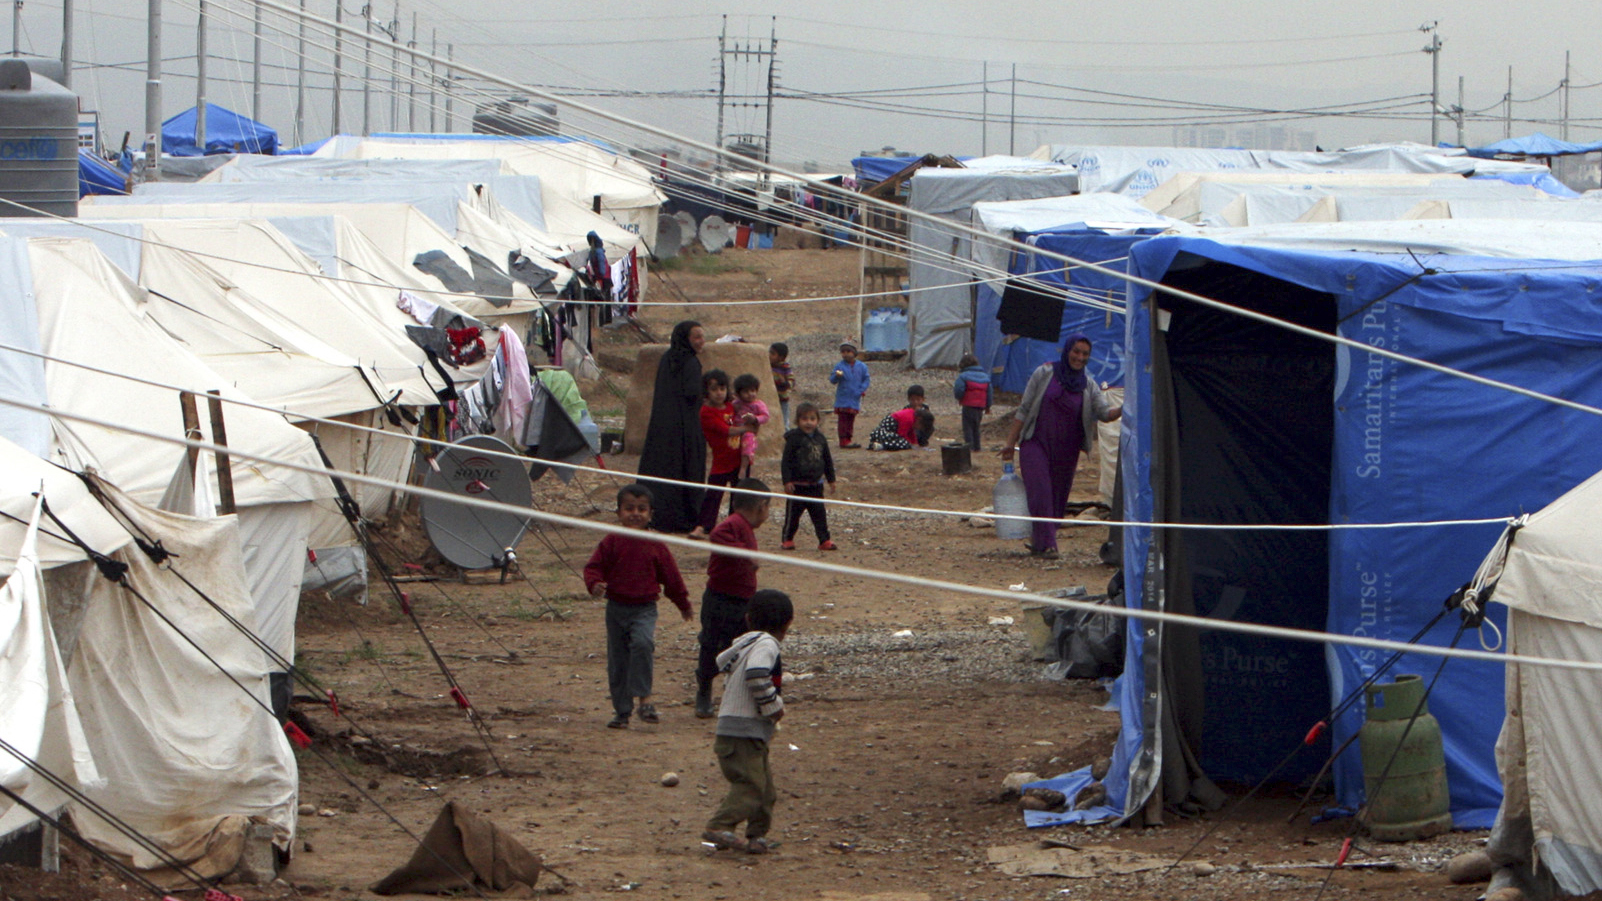 Displaced Iraqi children, who fled from Islamic State violence in Mosul, play in refugee camp on the outskirts of the Kurdish city of Arbil, December 1, 2014.  They used to be symbols of an oil-fuelled boom, but the unfinished buildings in Iraq's Kurdish north are now crammed with people fleeing violence in the rest of the country. Of the two million people displaced by Islamic State offensives in Iraq this year, almost half sought refuge in Kurdistan, inflating the semi-autonomous region's population by around 20 percent and putting acute strain on its resources.